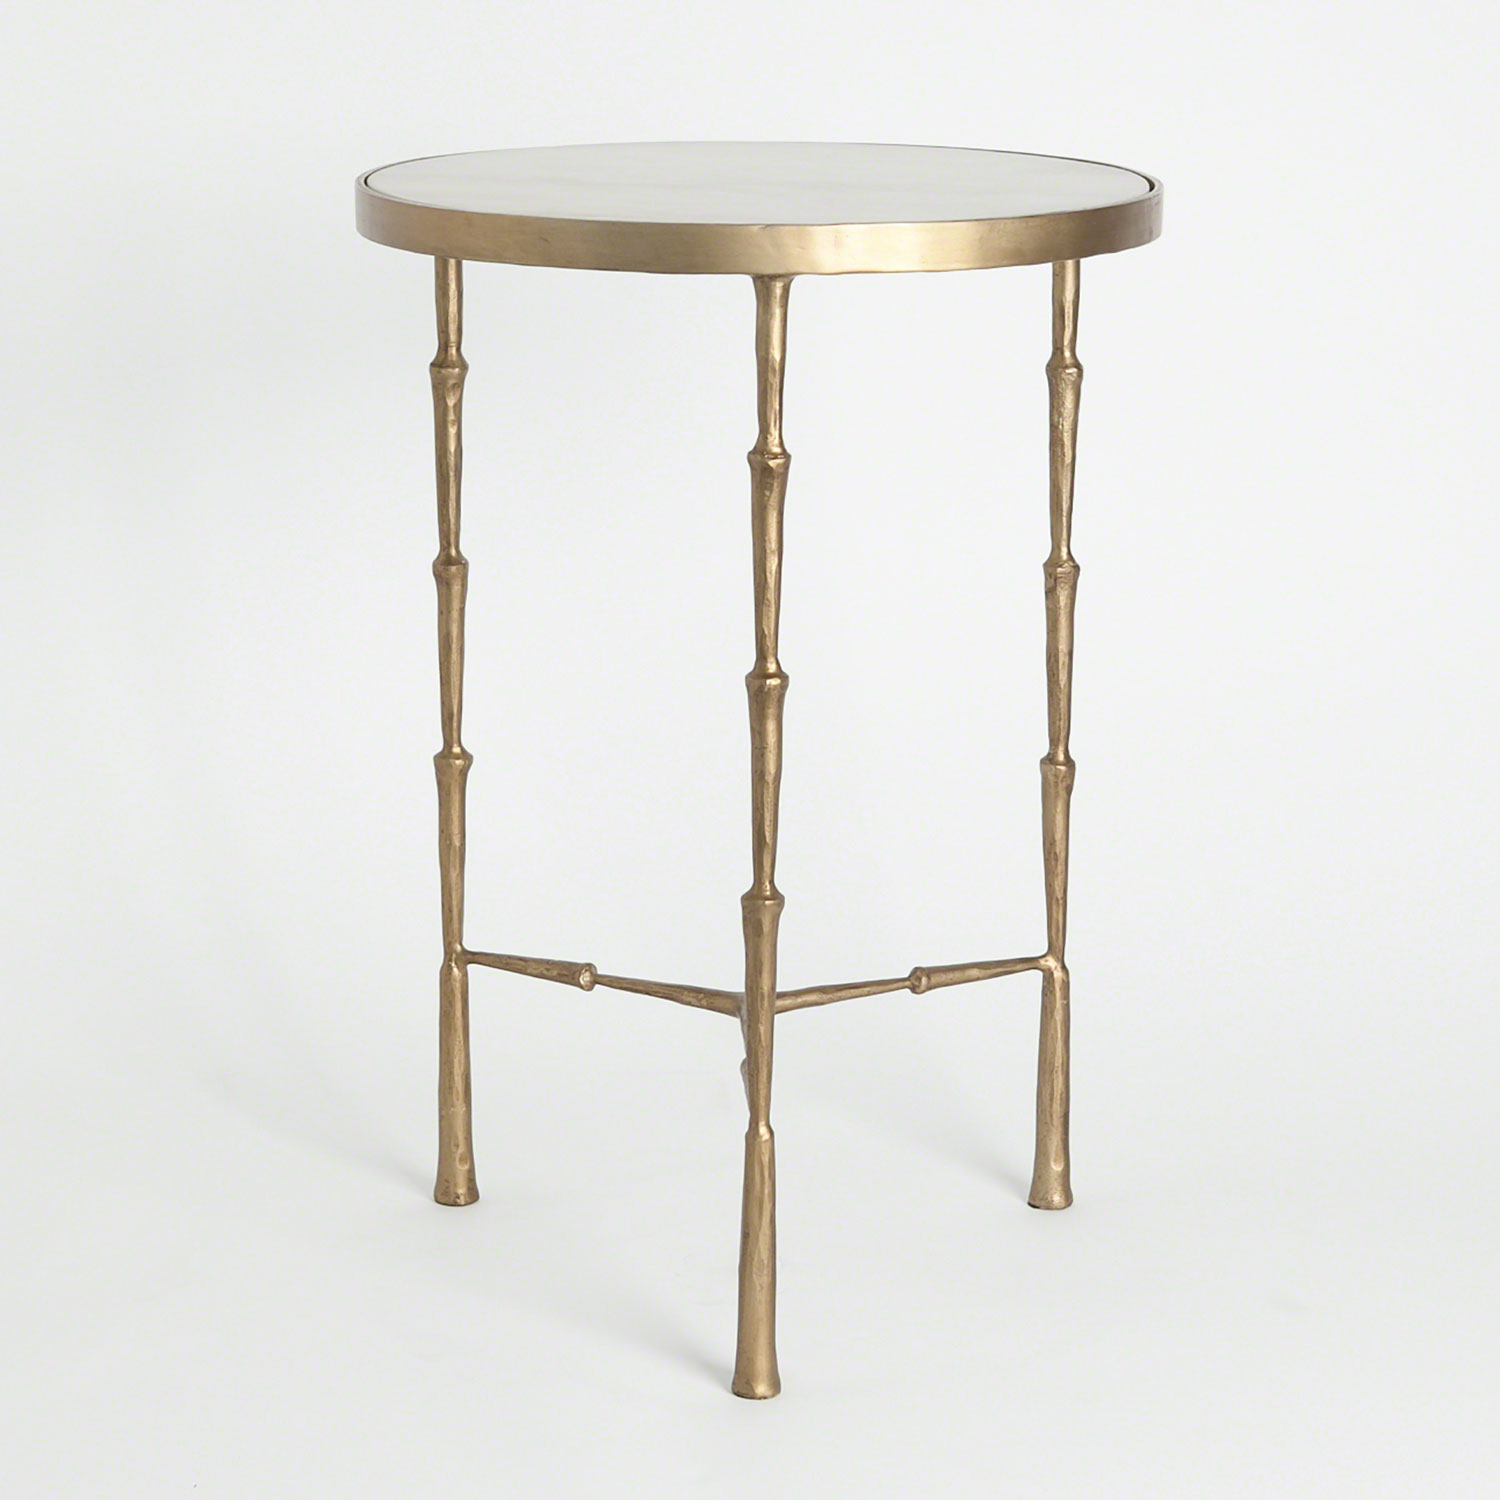 marble accent table limetennis signy drum with top global views studio spike brass white blue and striped patio umbrella round removable legs small iron garden wine rack insert